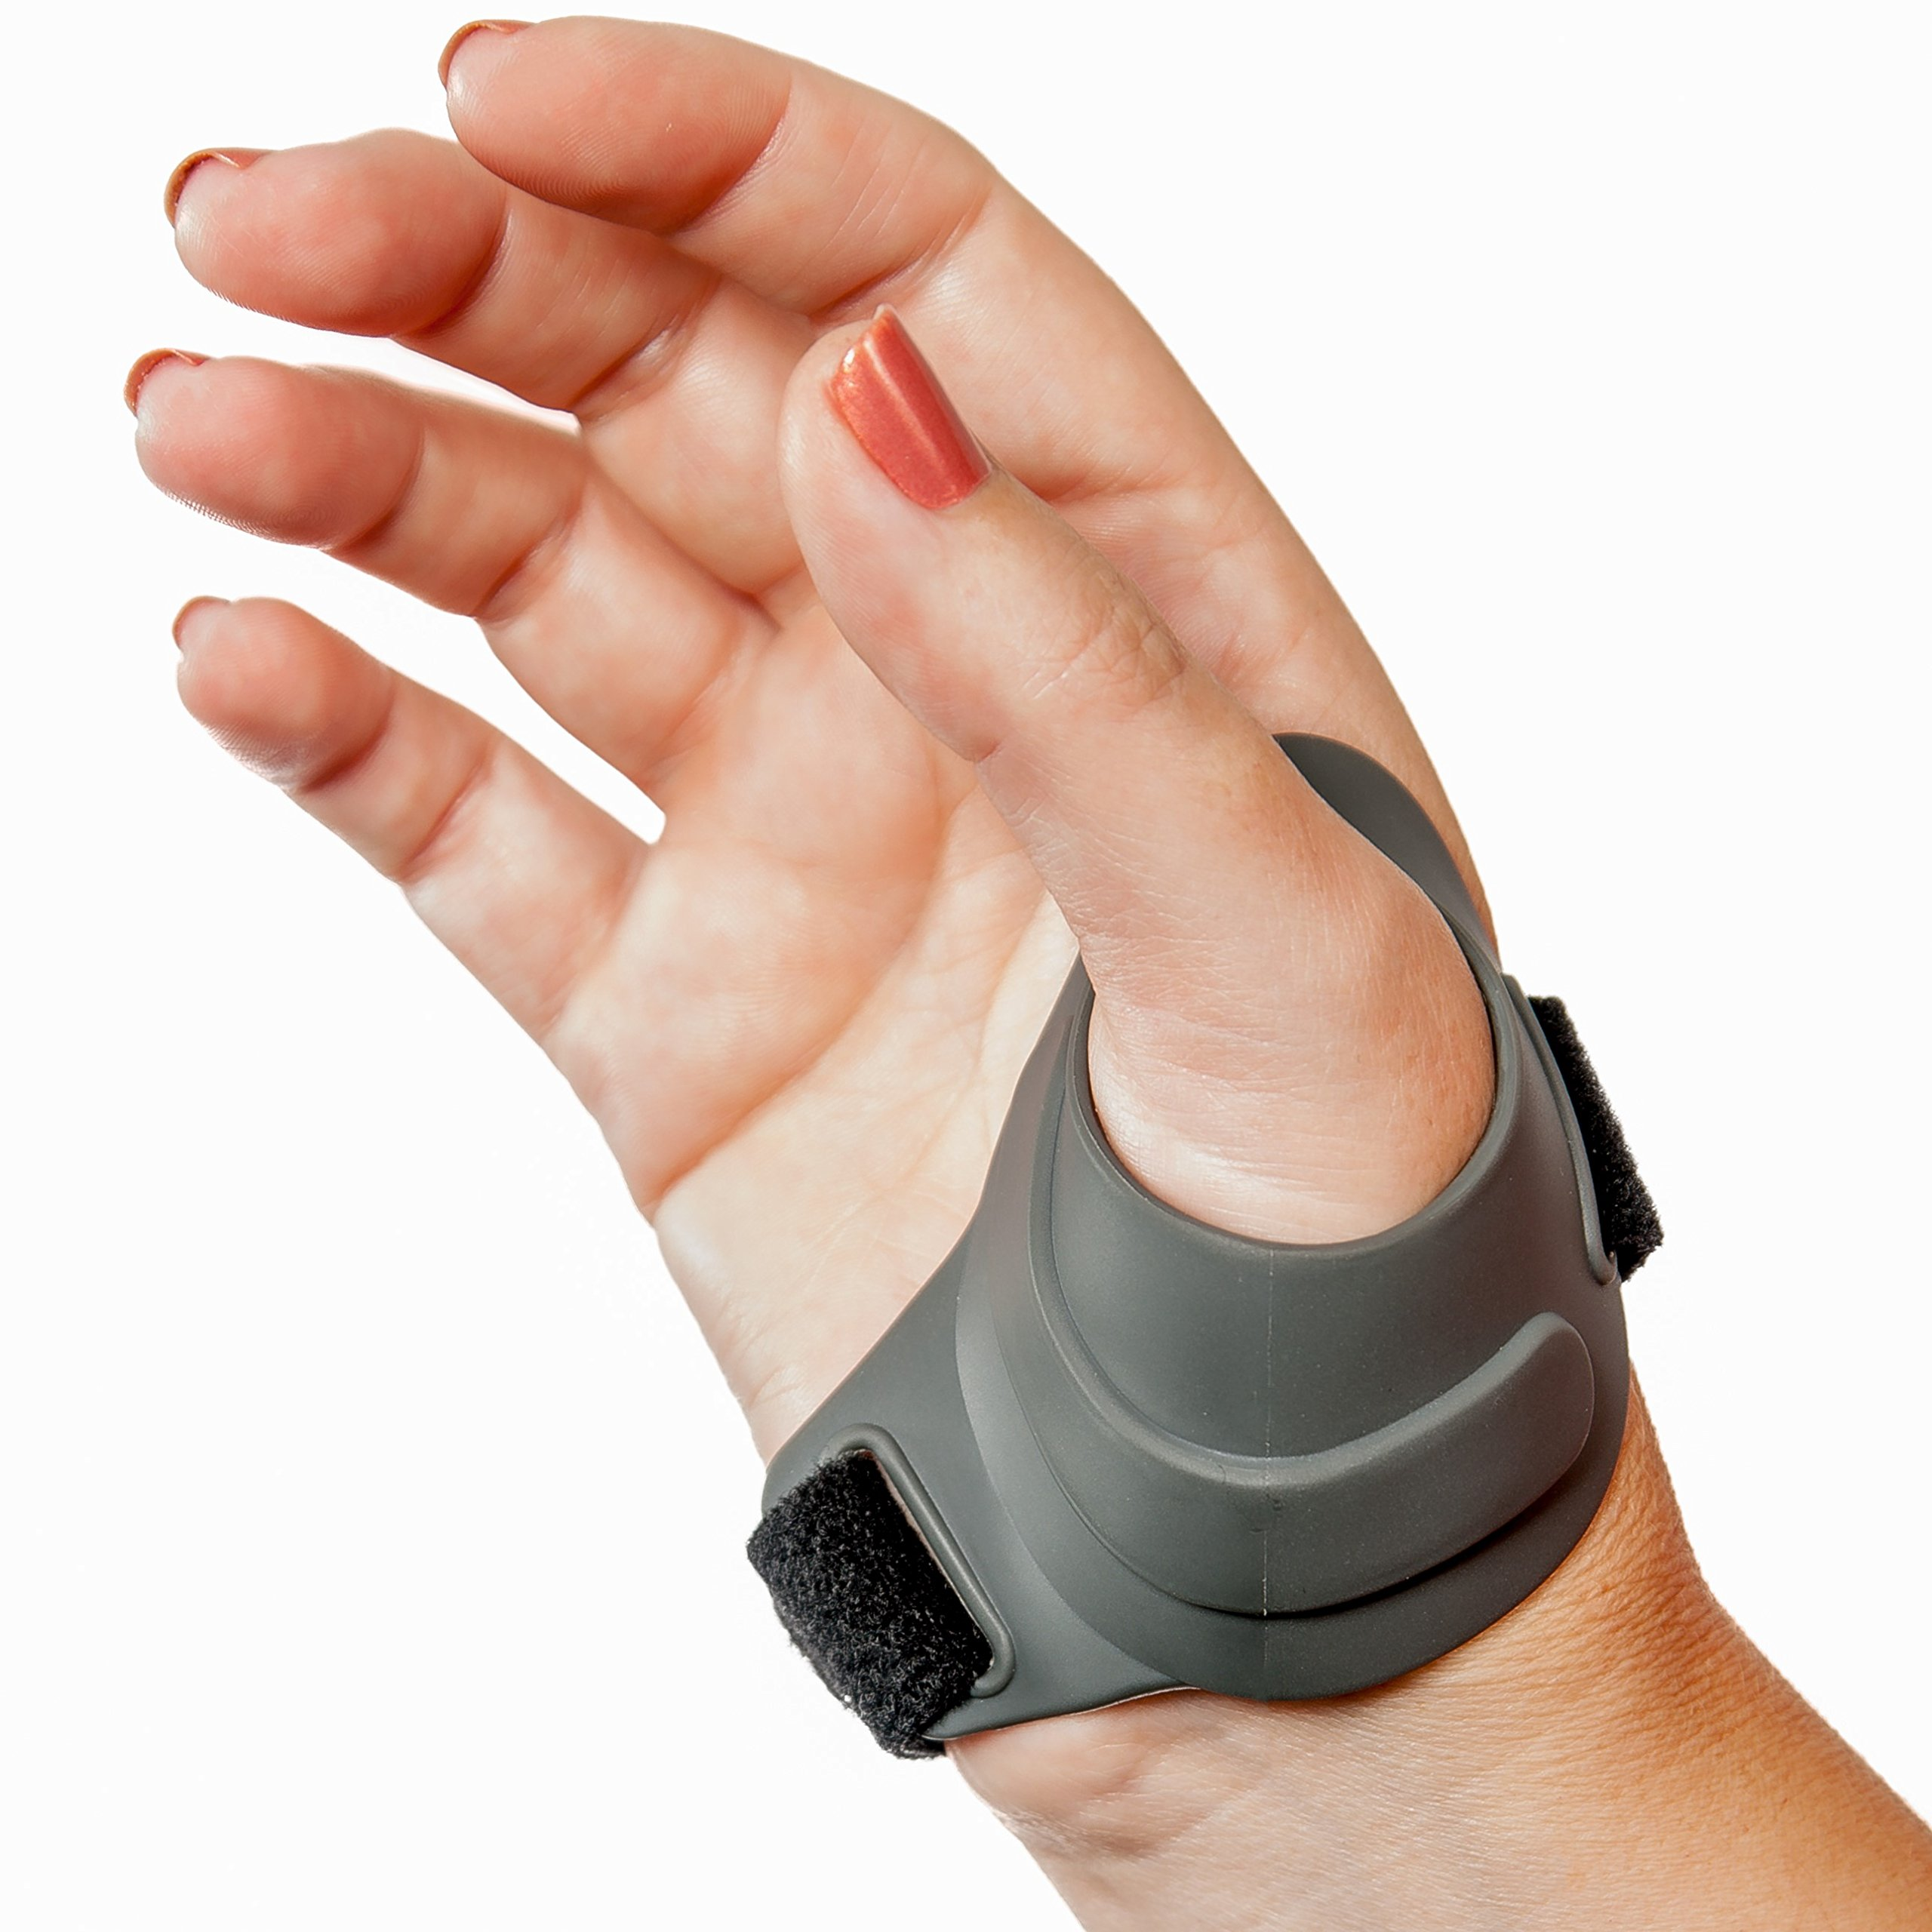 CMCcare Thumb Brace - Durable, Waterproof Brace for Thumb Arthritis Pain Relief, Left Hand, Size Medium by Basko Healthcare